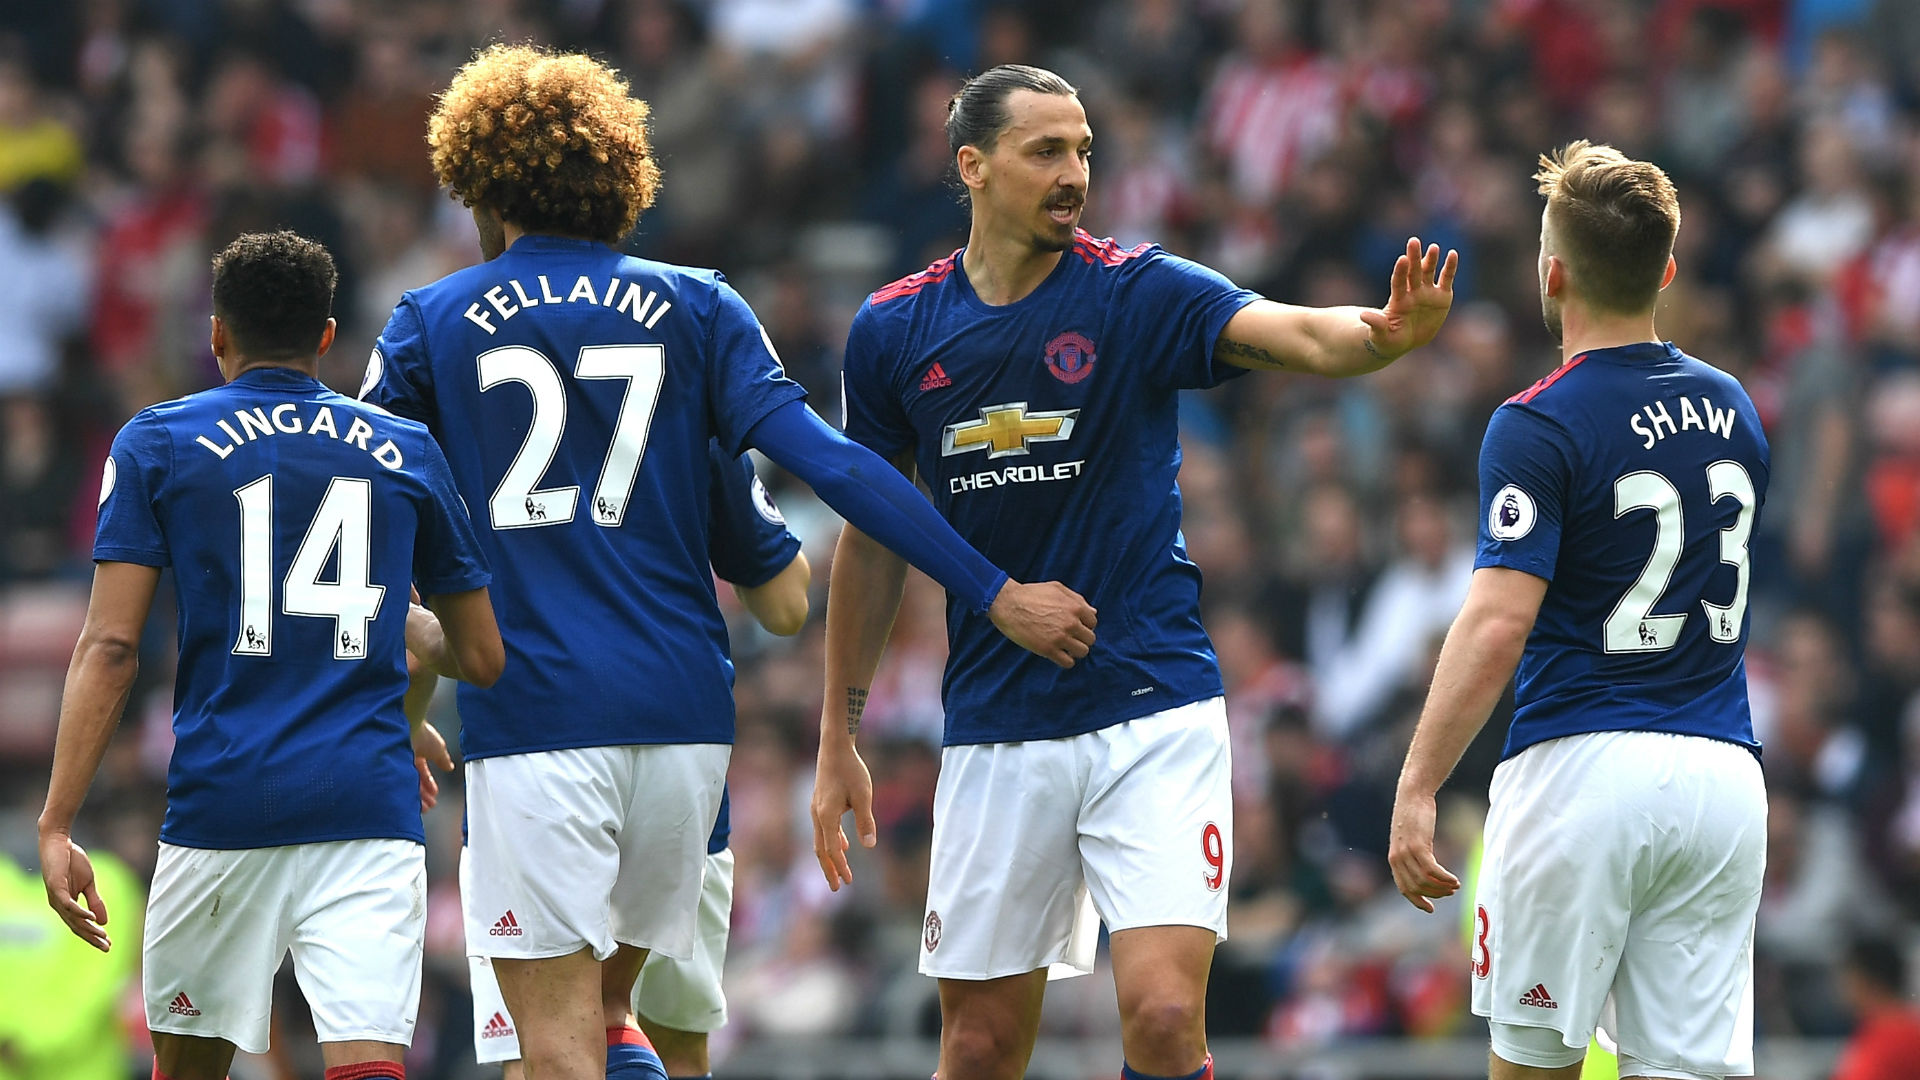 Manchester United Defeat Sunderland to Keep Top-4 Hopes Alive